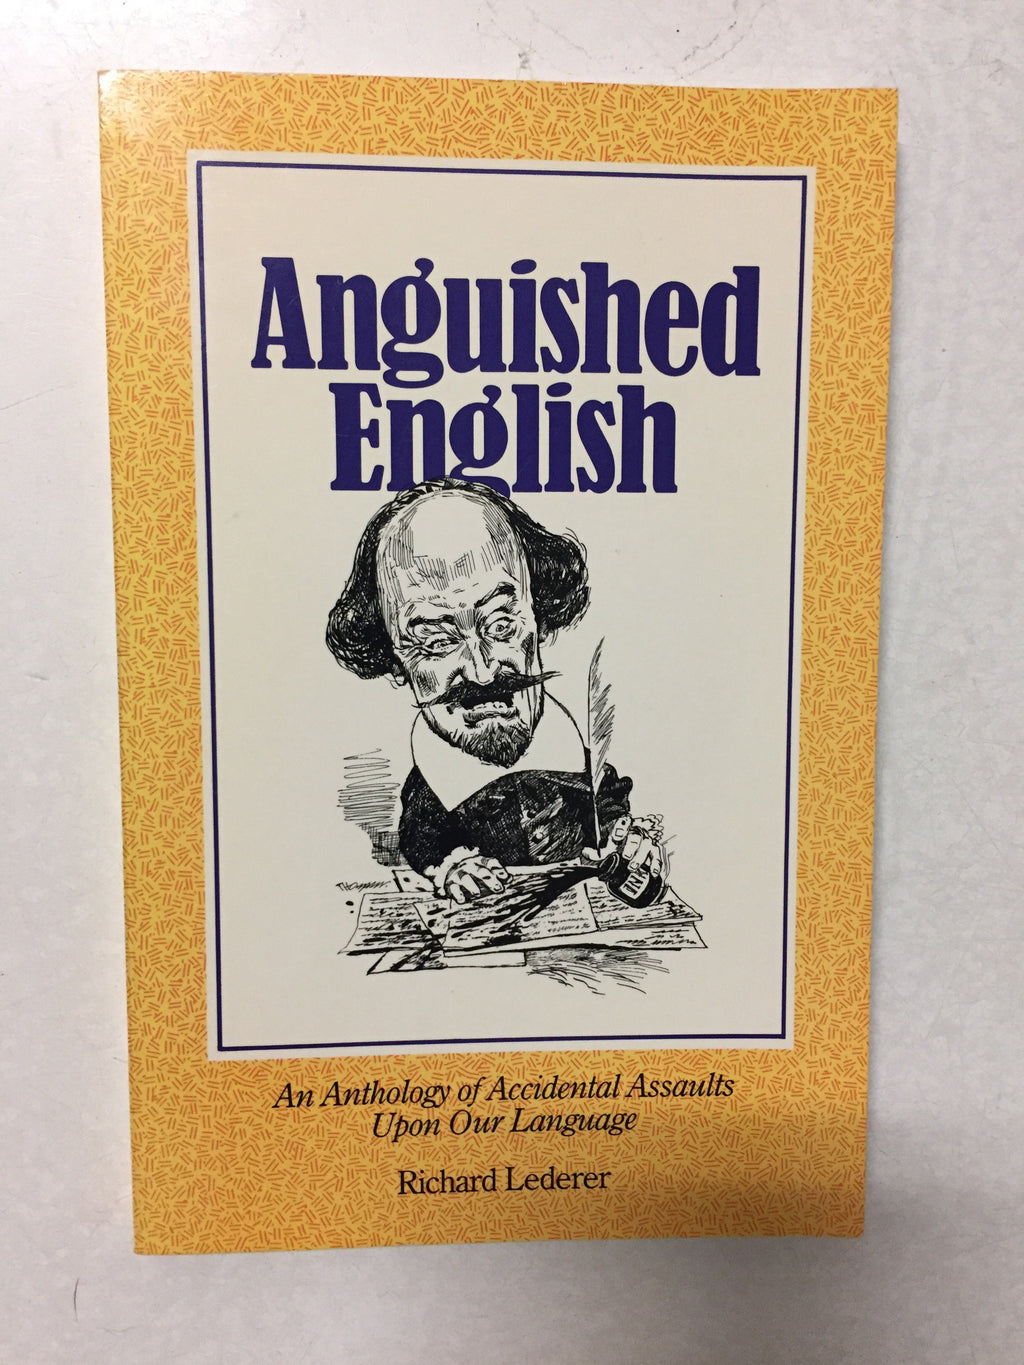 Anguished English An Anthology of Accidental Assaults Upon Our Language - Slick Cat Books